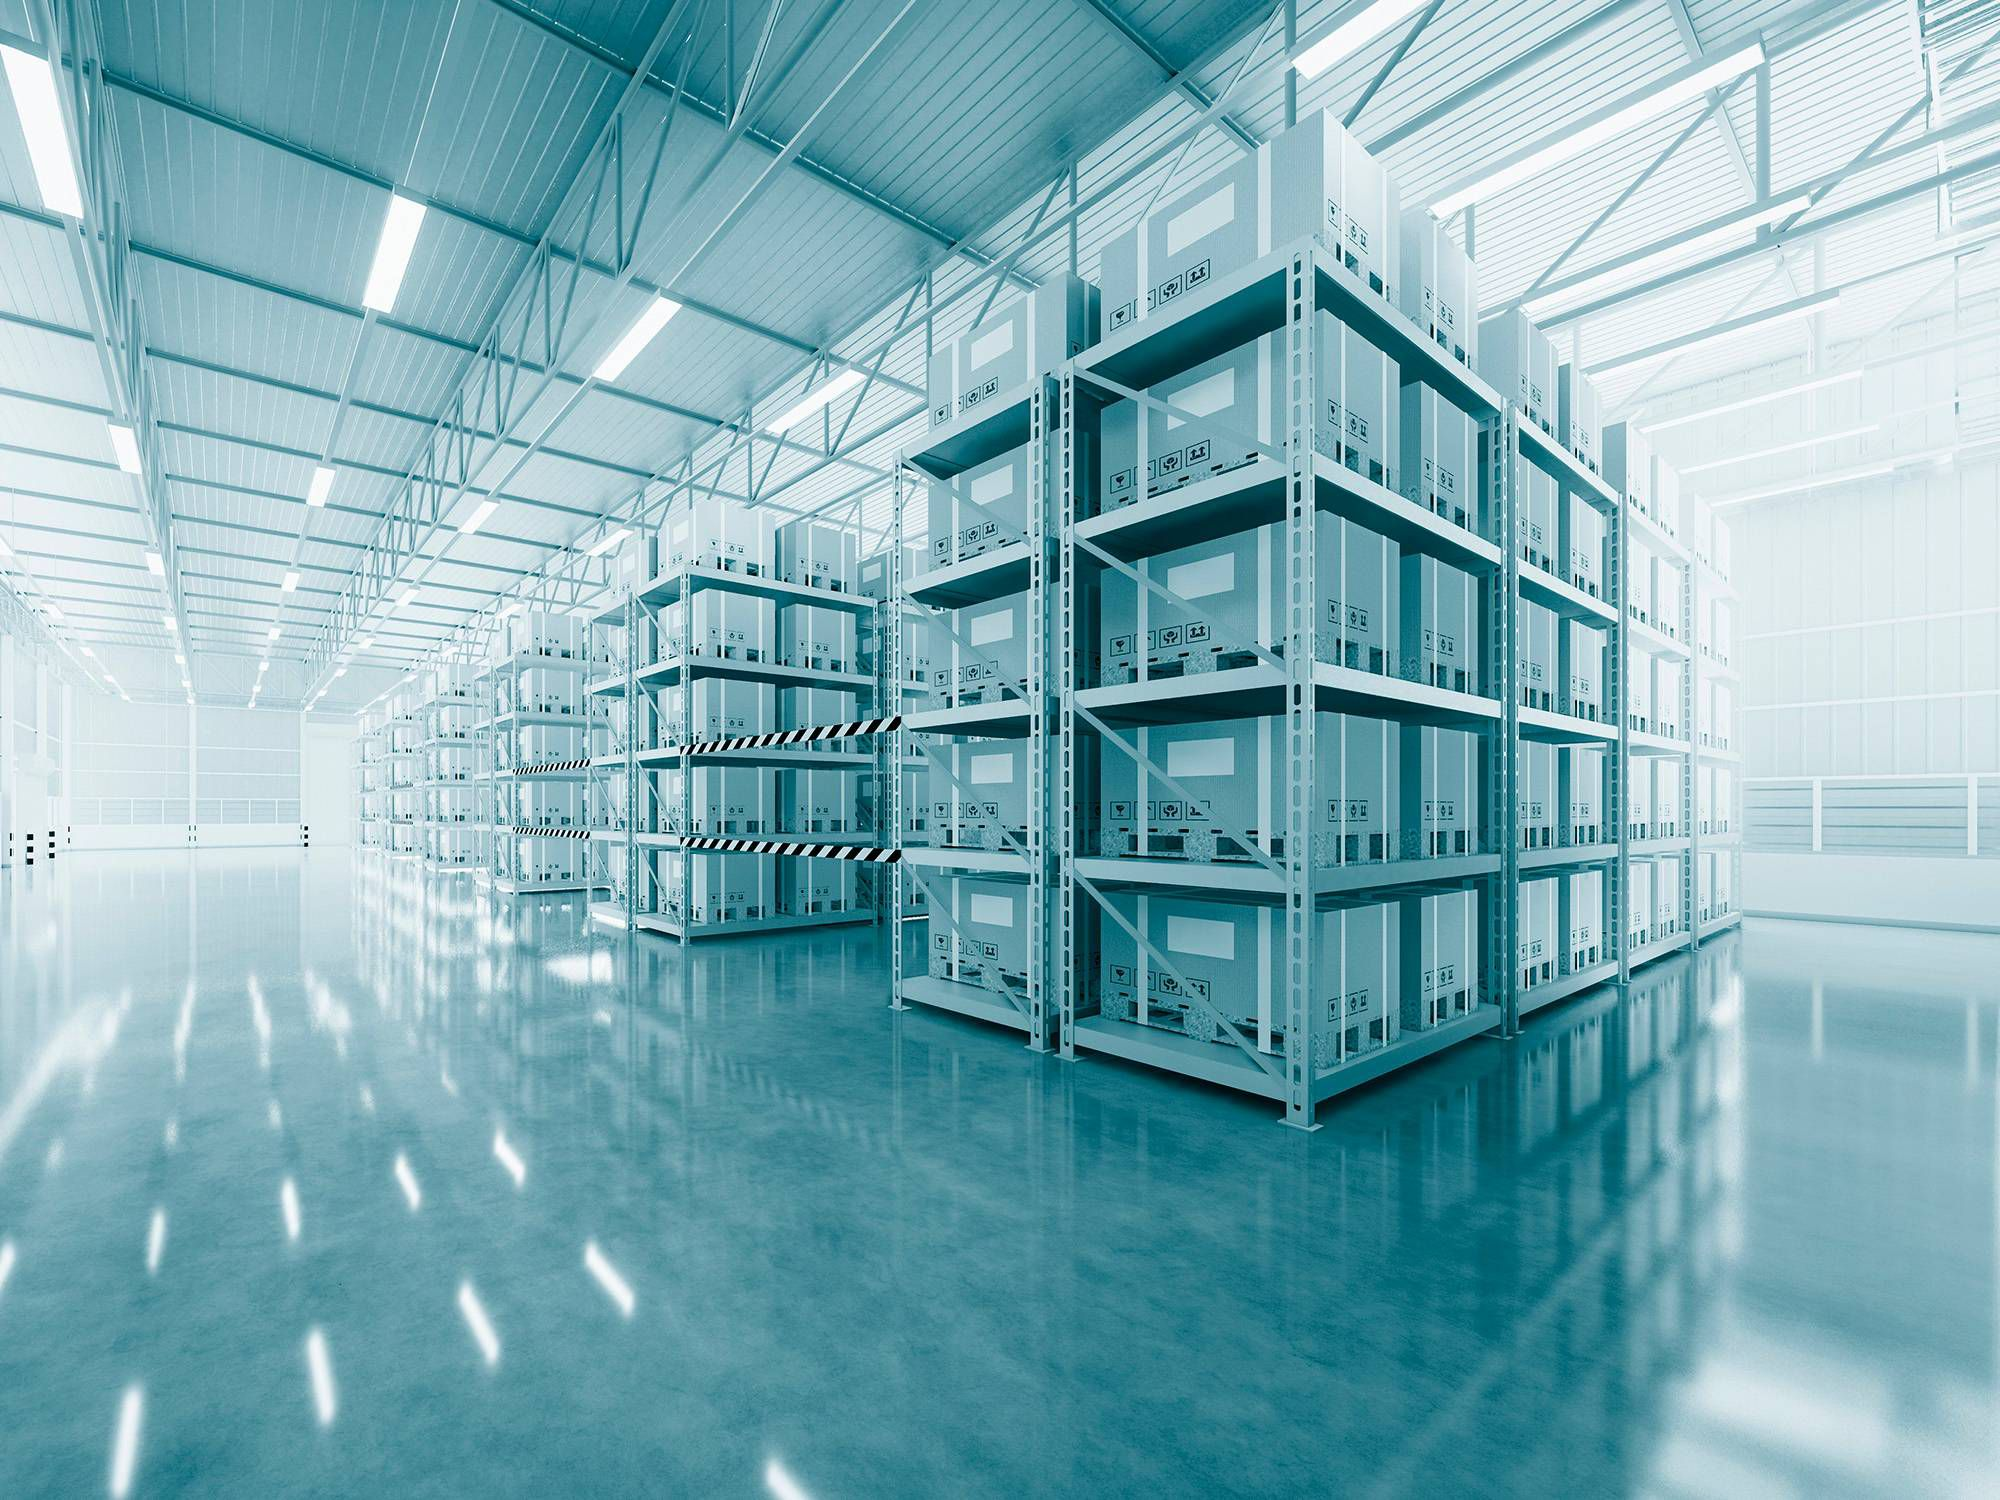 Storage racks for pharmaceuticals in a logistics centre